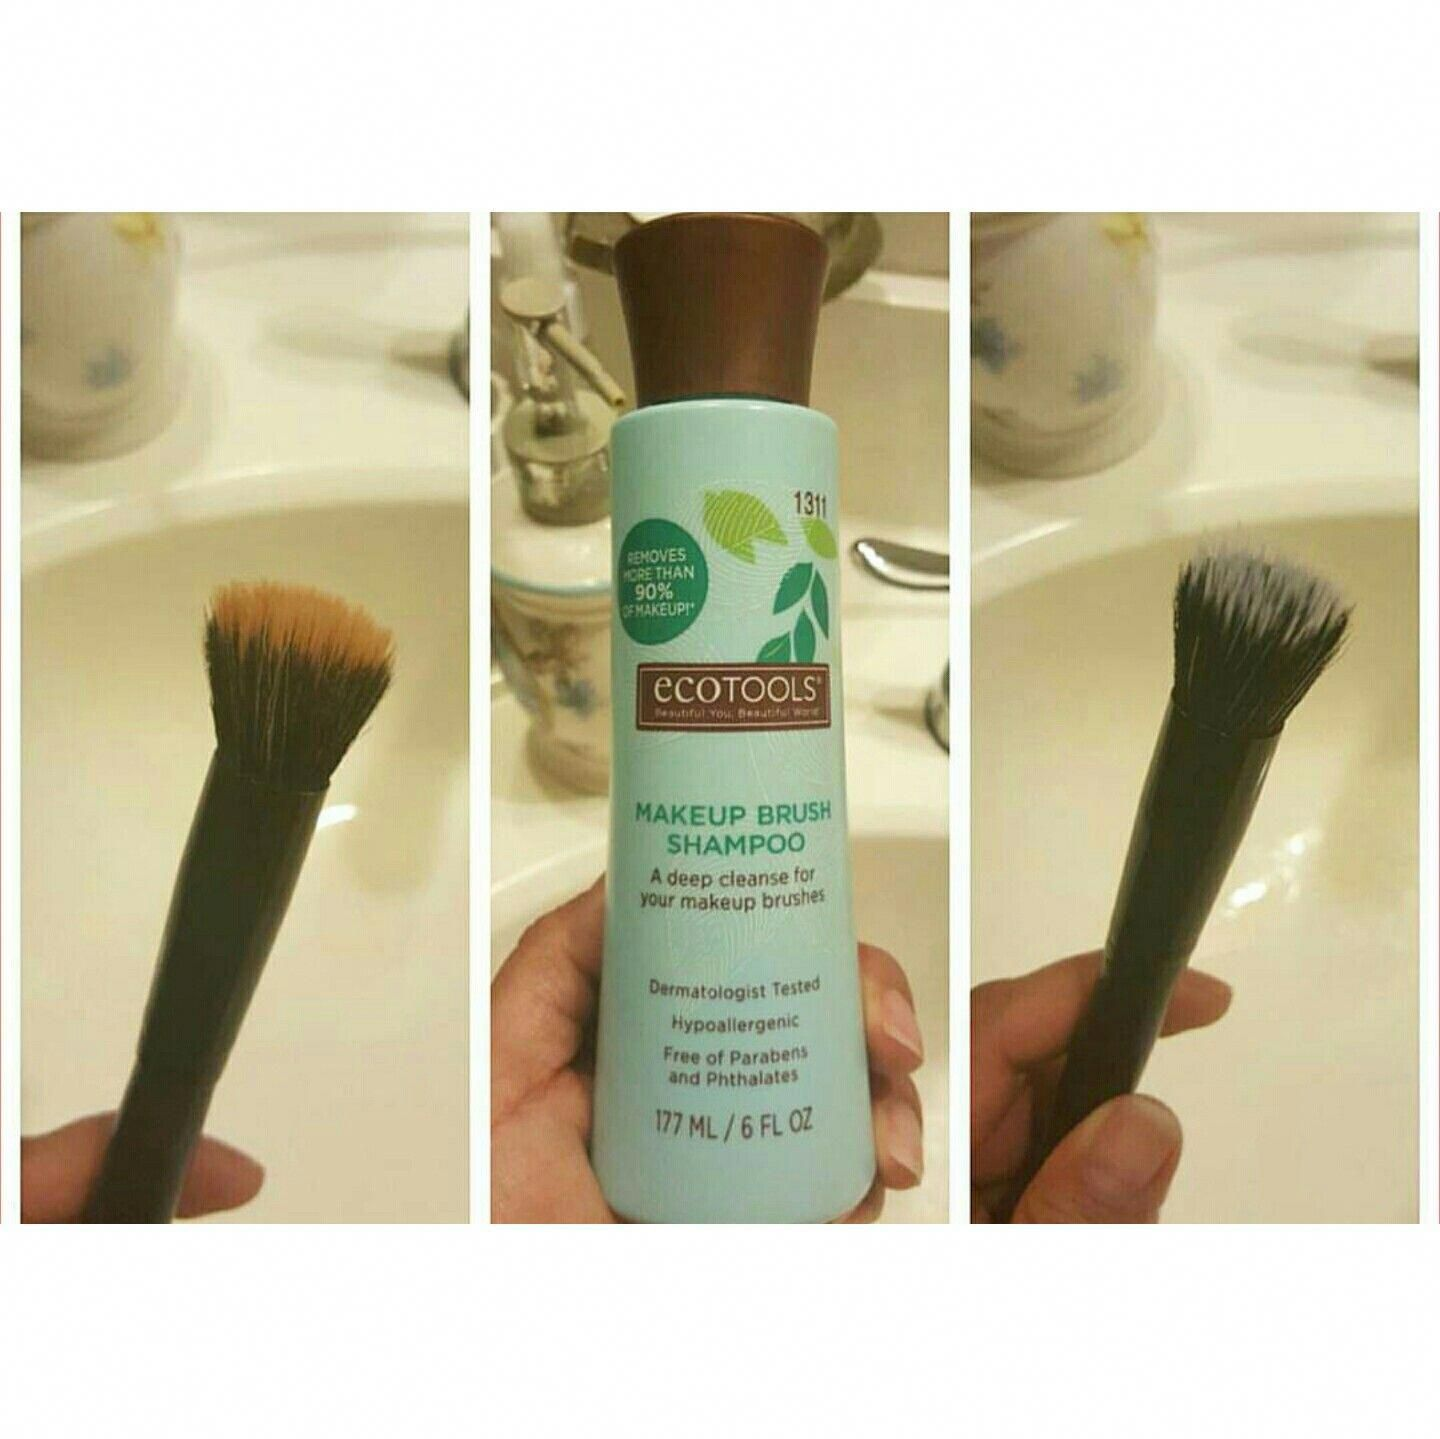 This Eco tools makeup brush shampoo is great!